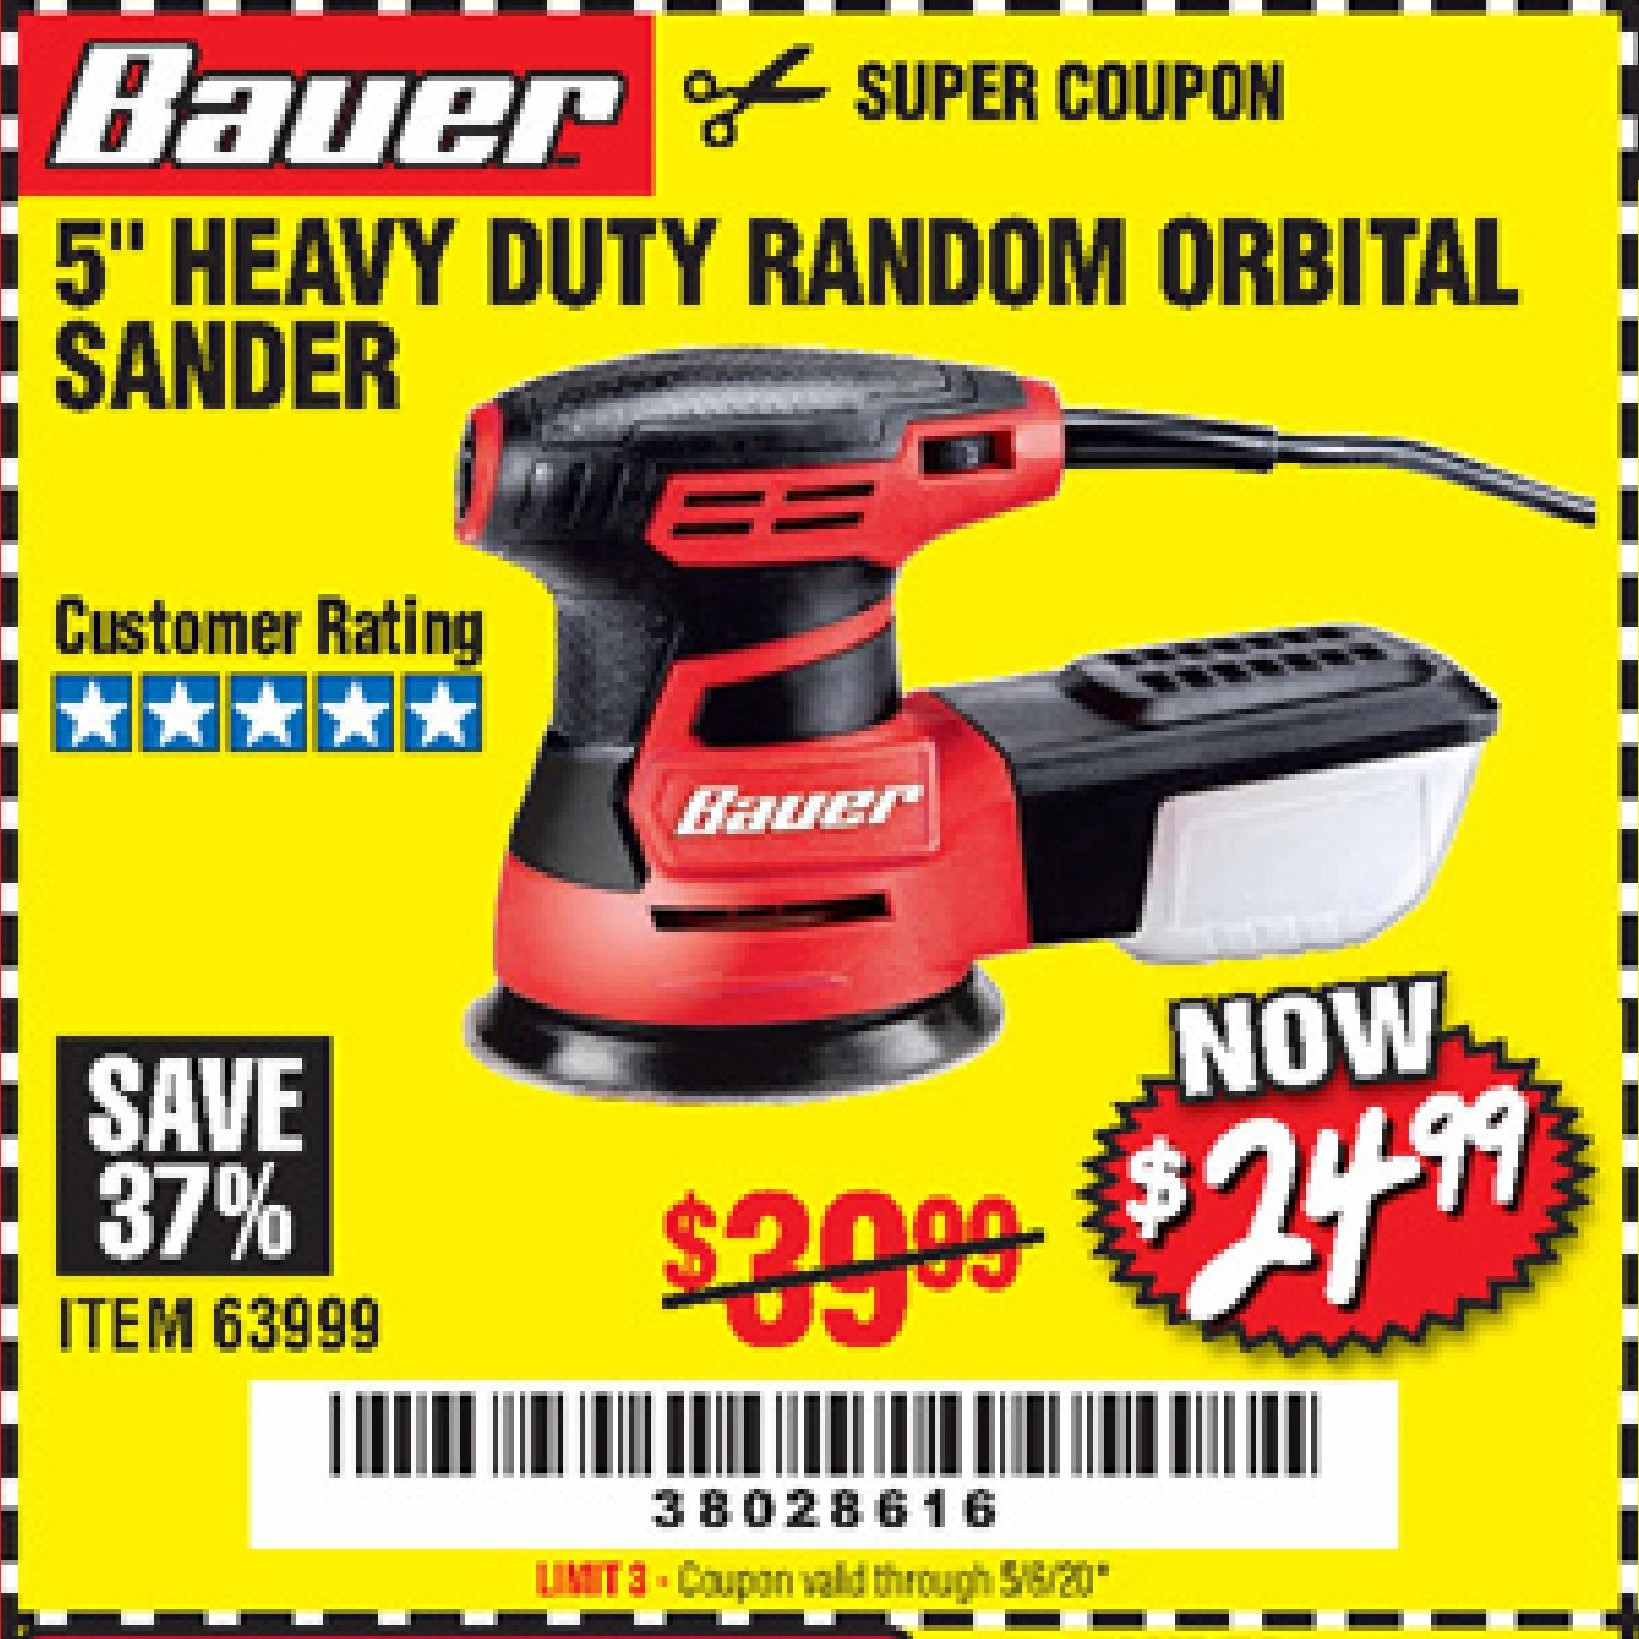 Harbor Freight BAUER 5